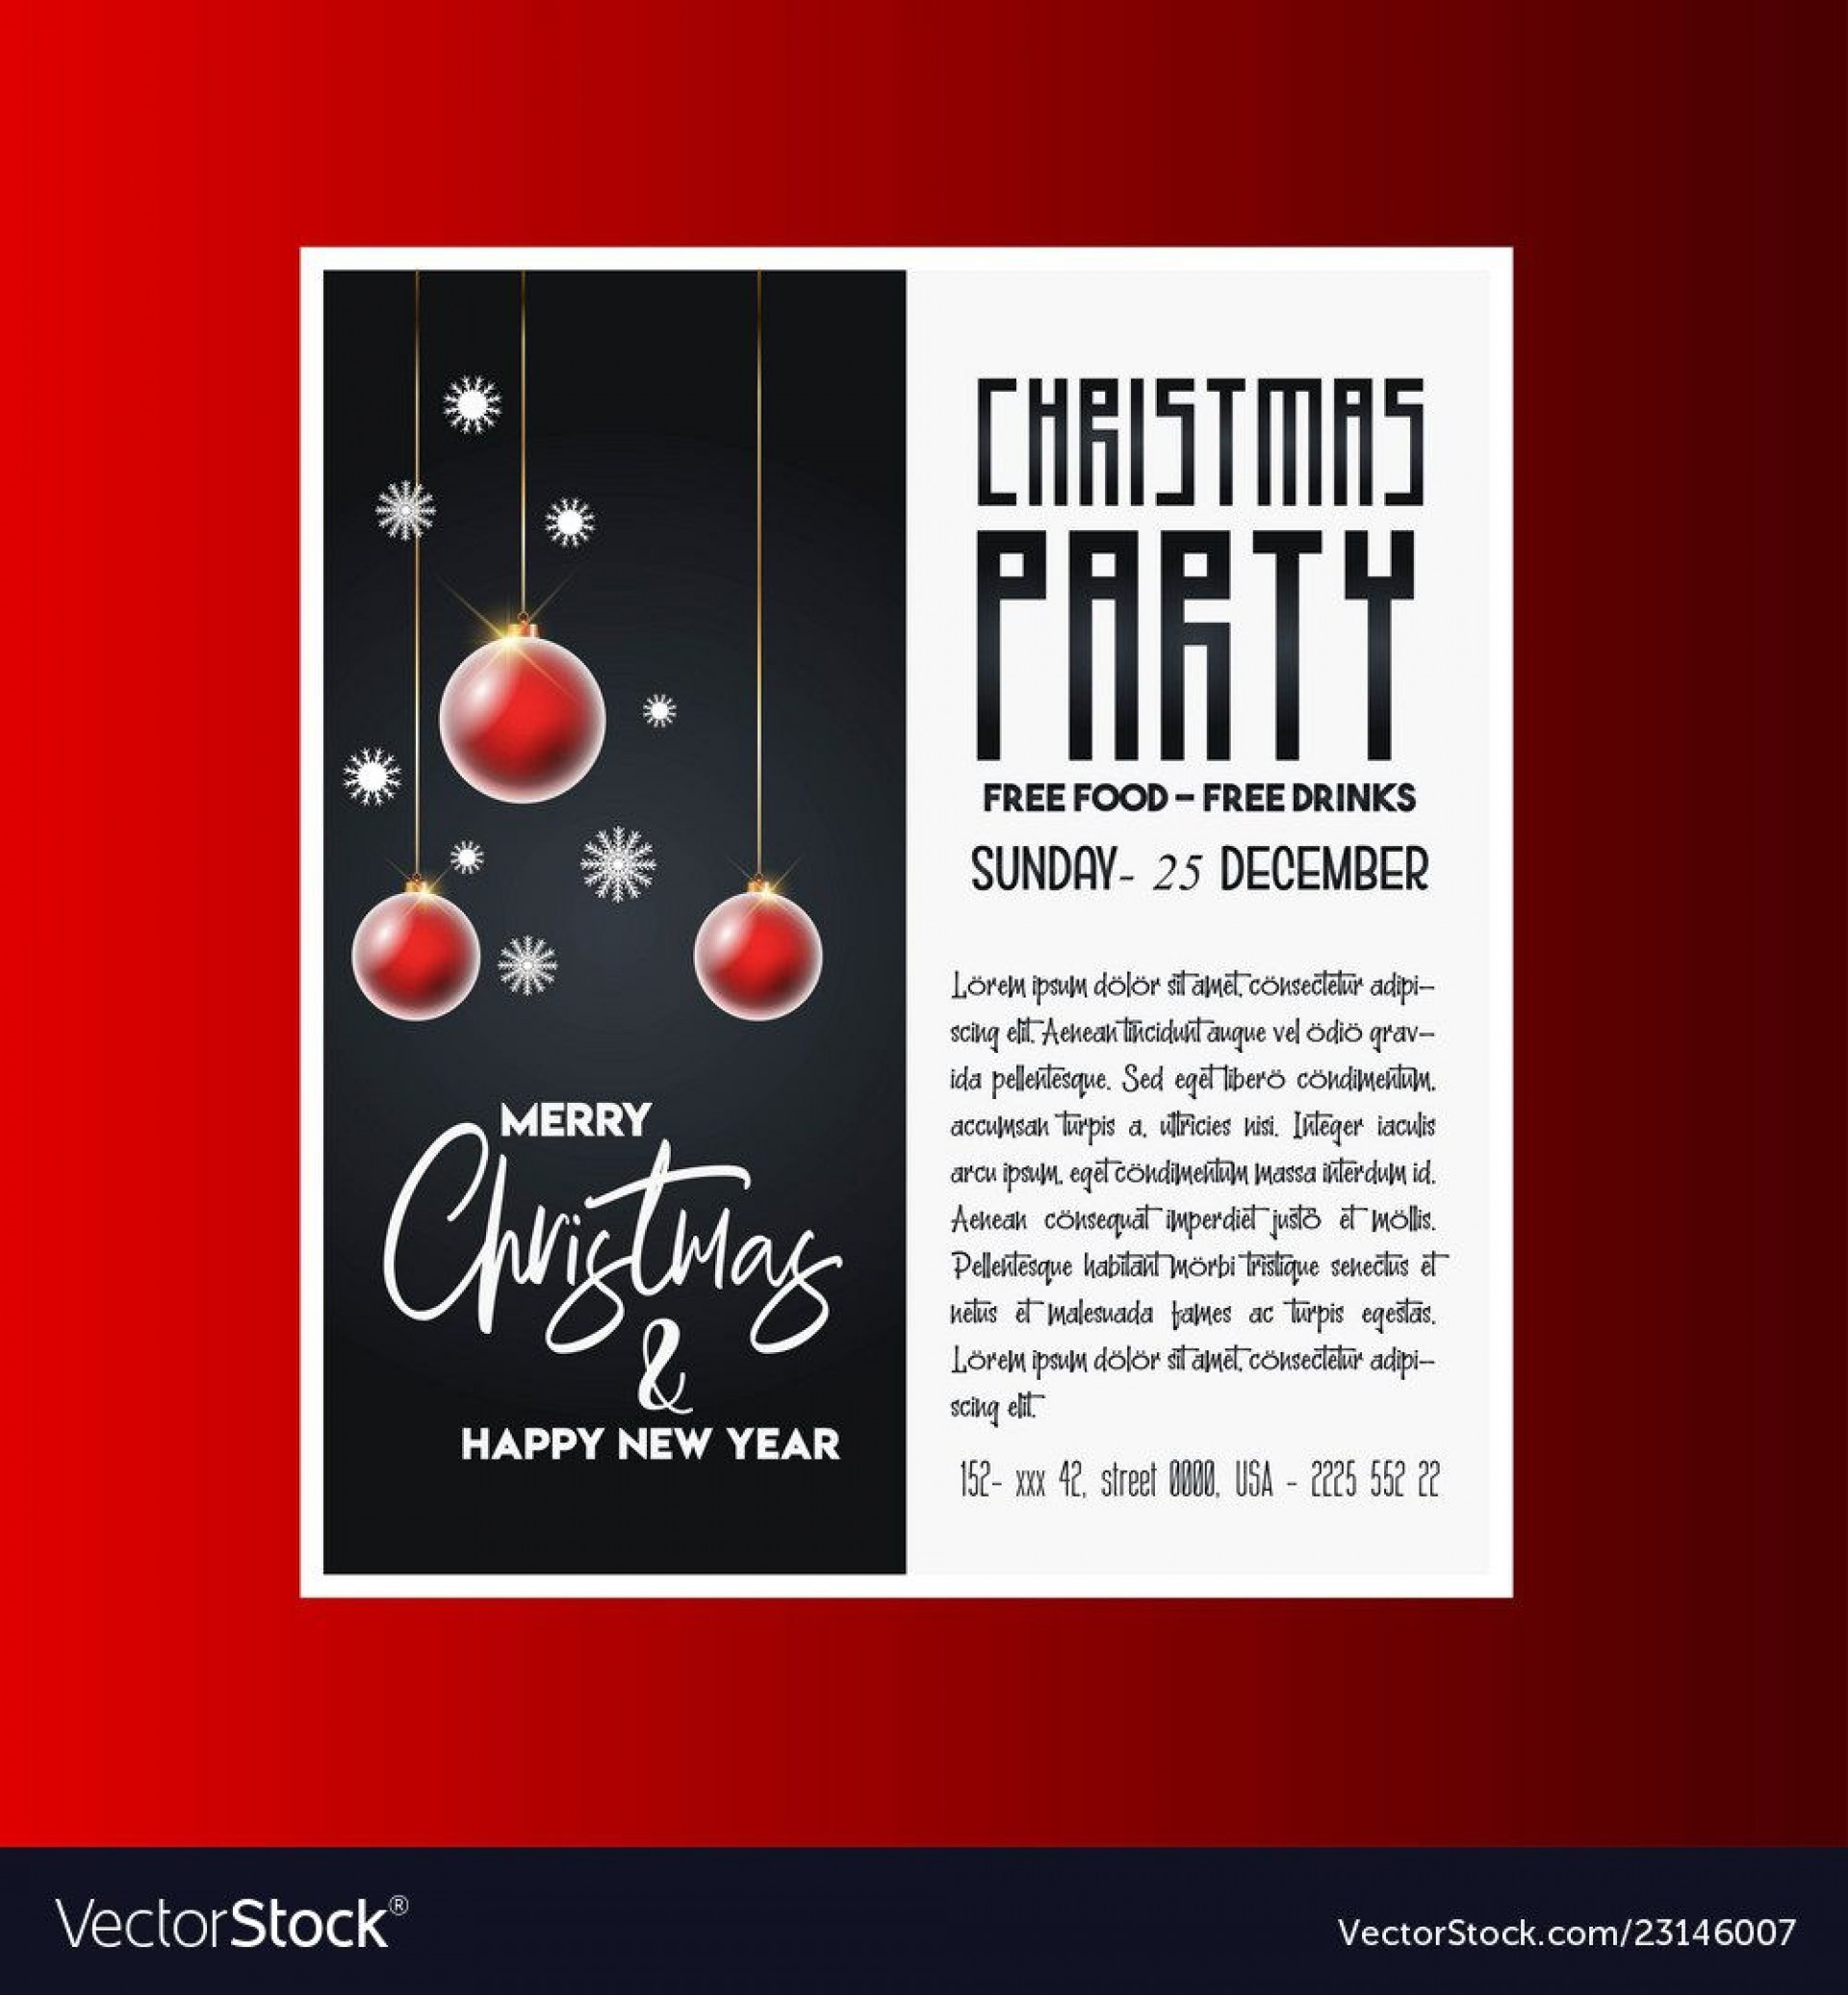 005 Magnificent Christma Party Flyer Template Free Highest Quality  Company Invitation Printable Word1920